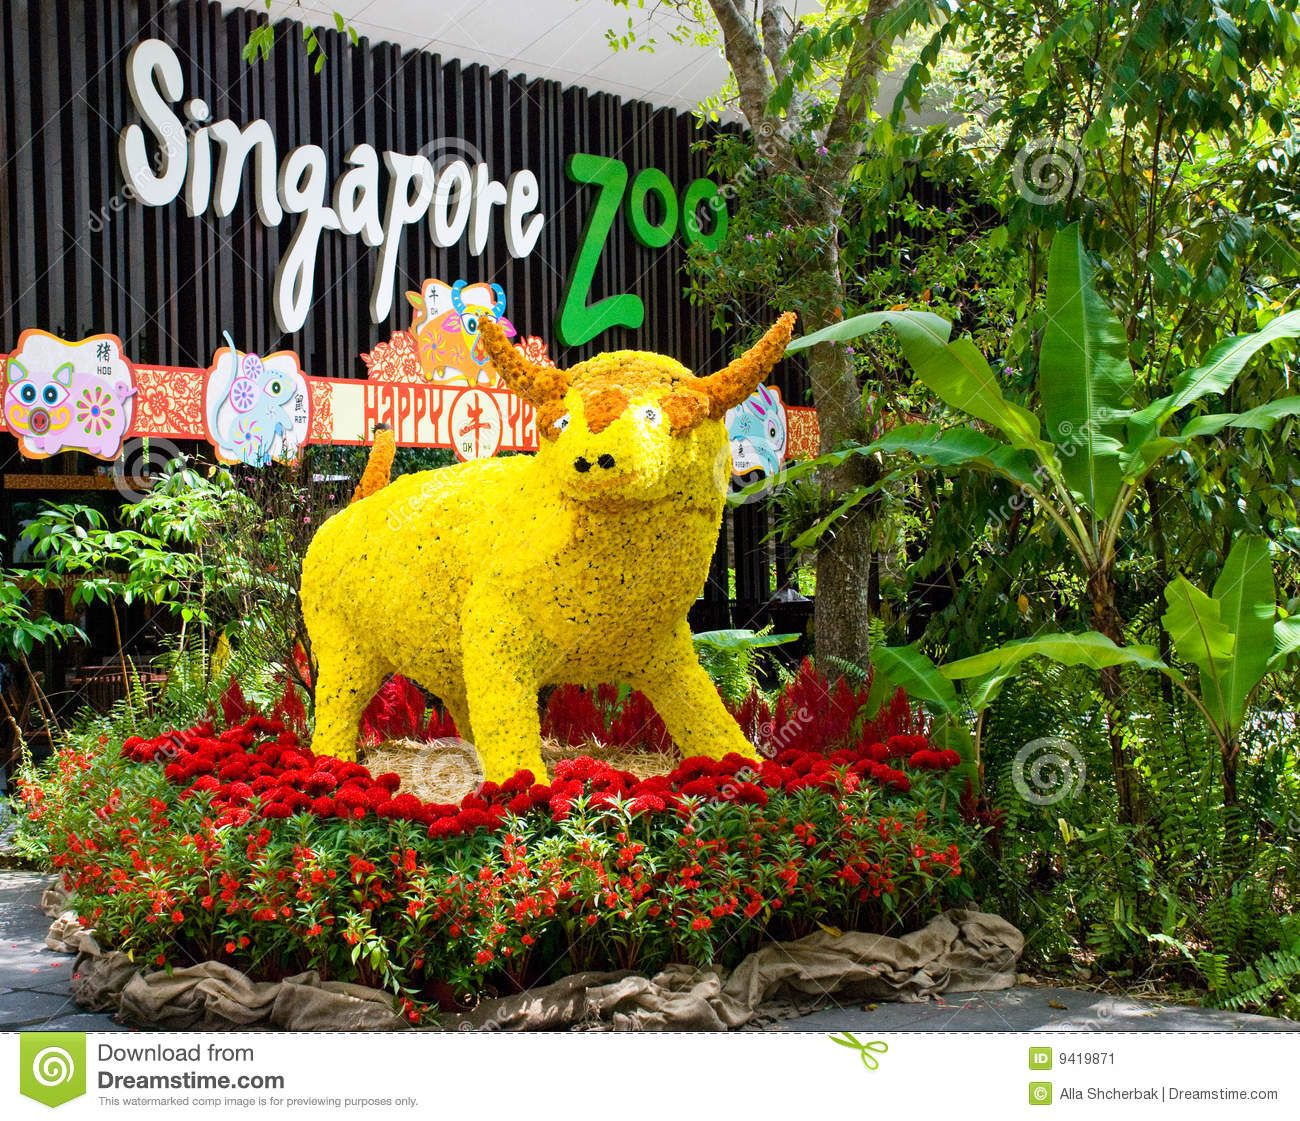 Flower Cow in Singapore Zoo